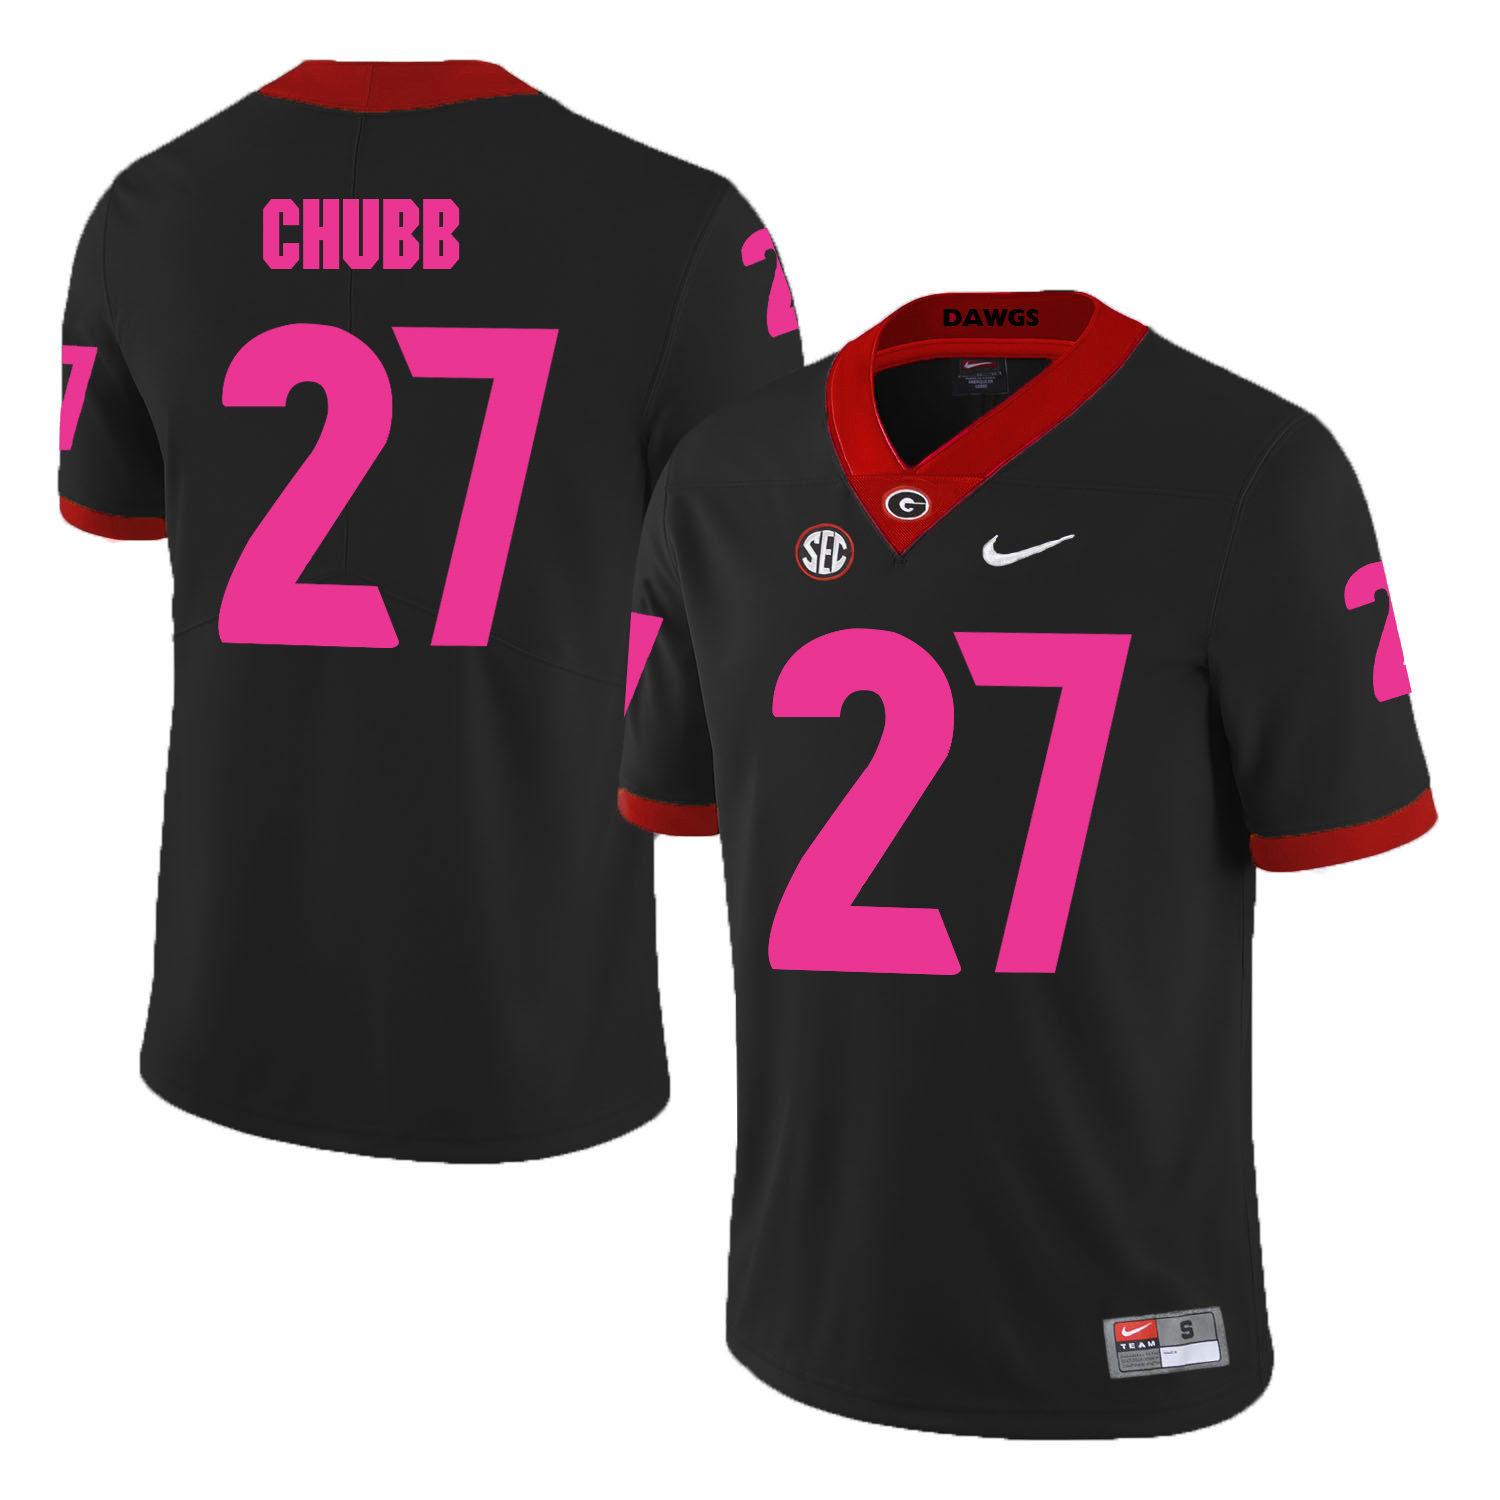 Georgia Bulldogs 27 Nick Chubb Black 2018 Breast Cancer Awareness College Football Jersey